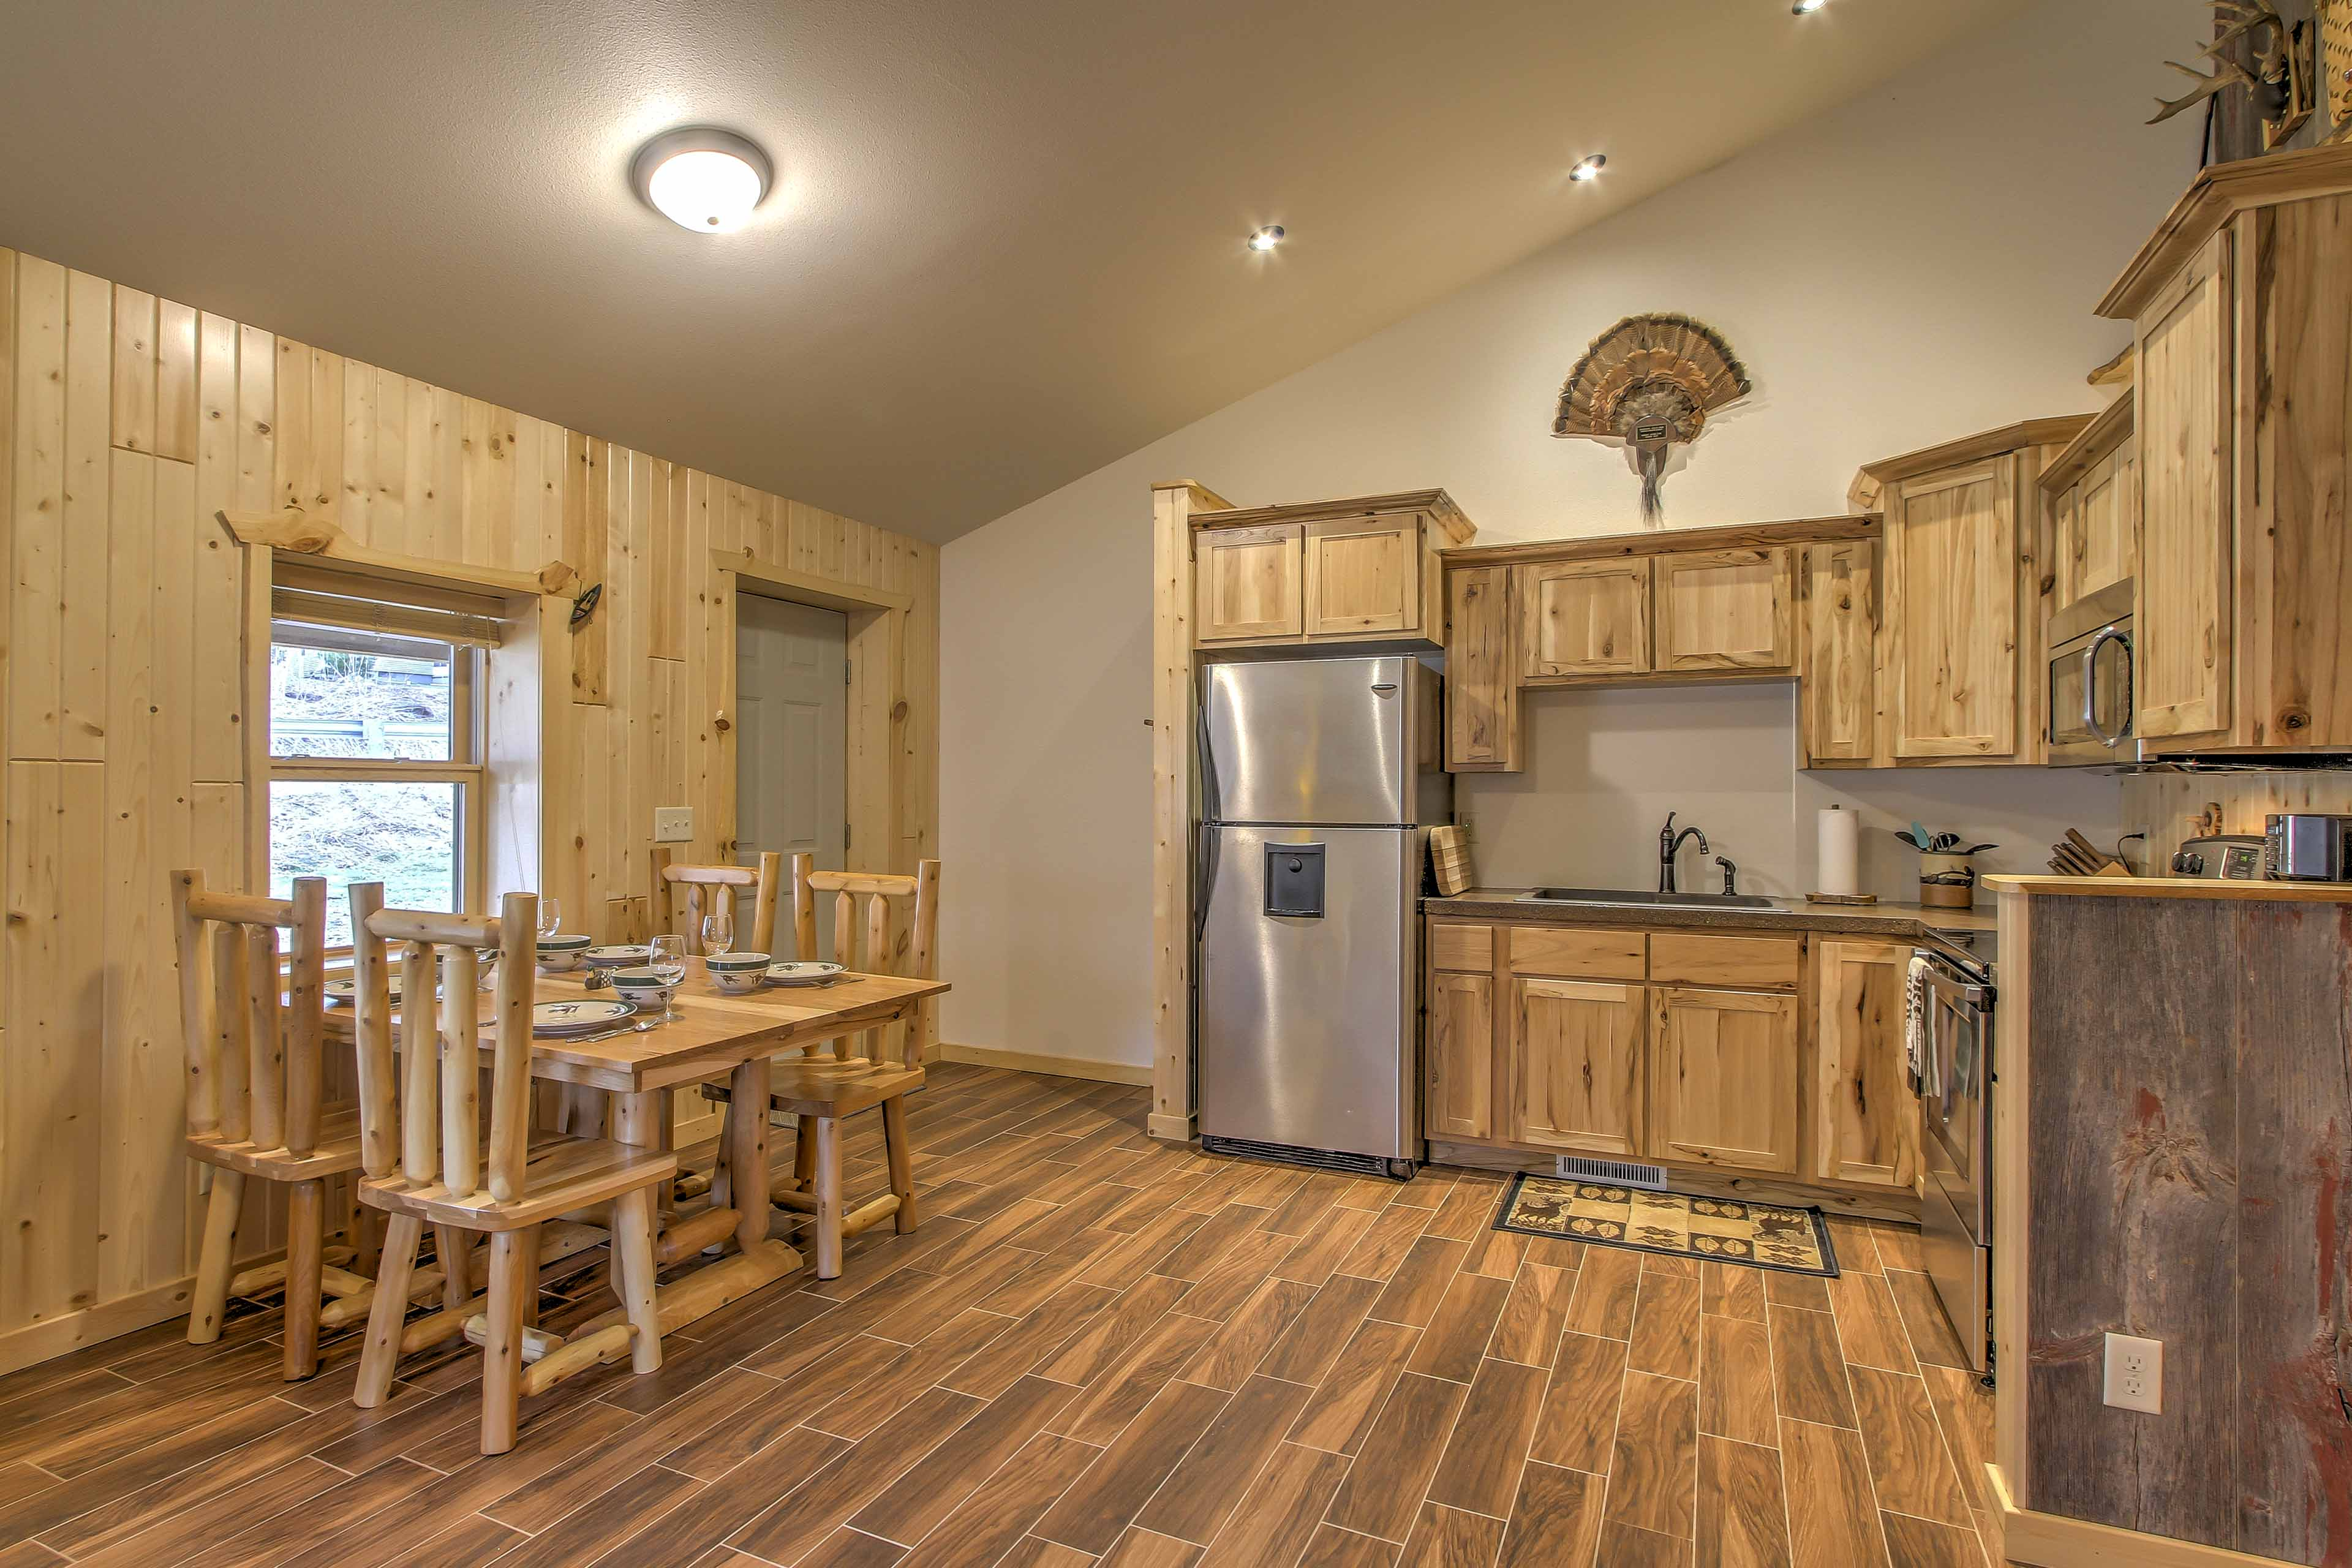 Whip up inspired couisine in the fully equipped kitchen.